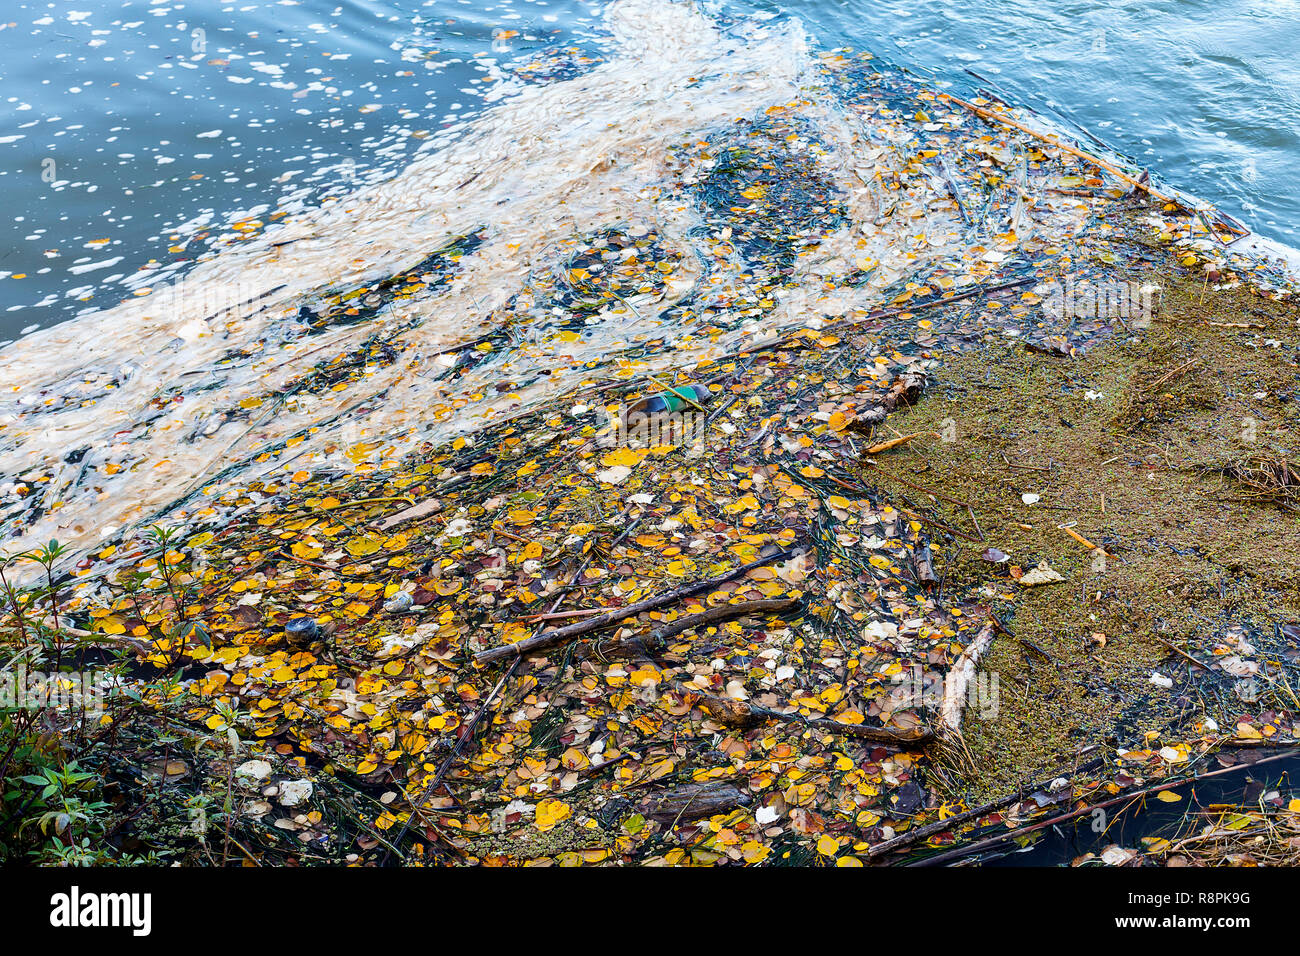 background of bottle and rubbish floating on water in riveside. River pollution - Stock Image